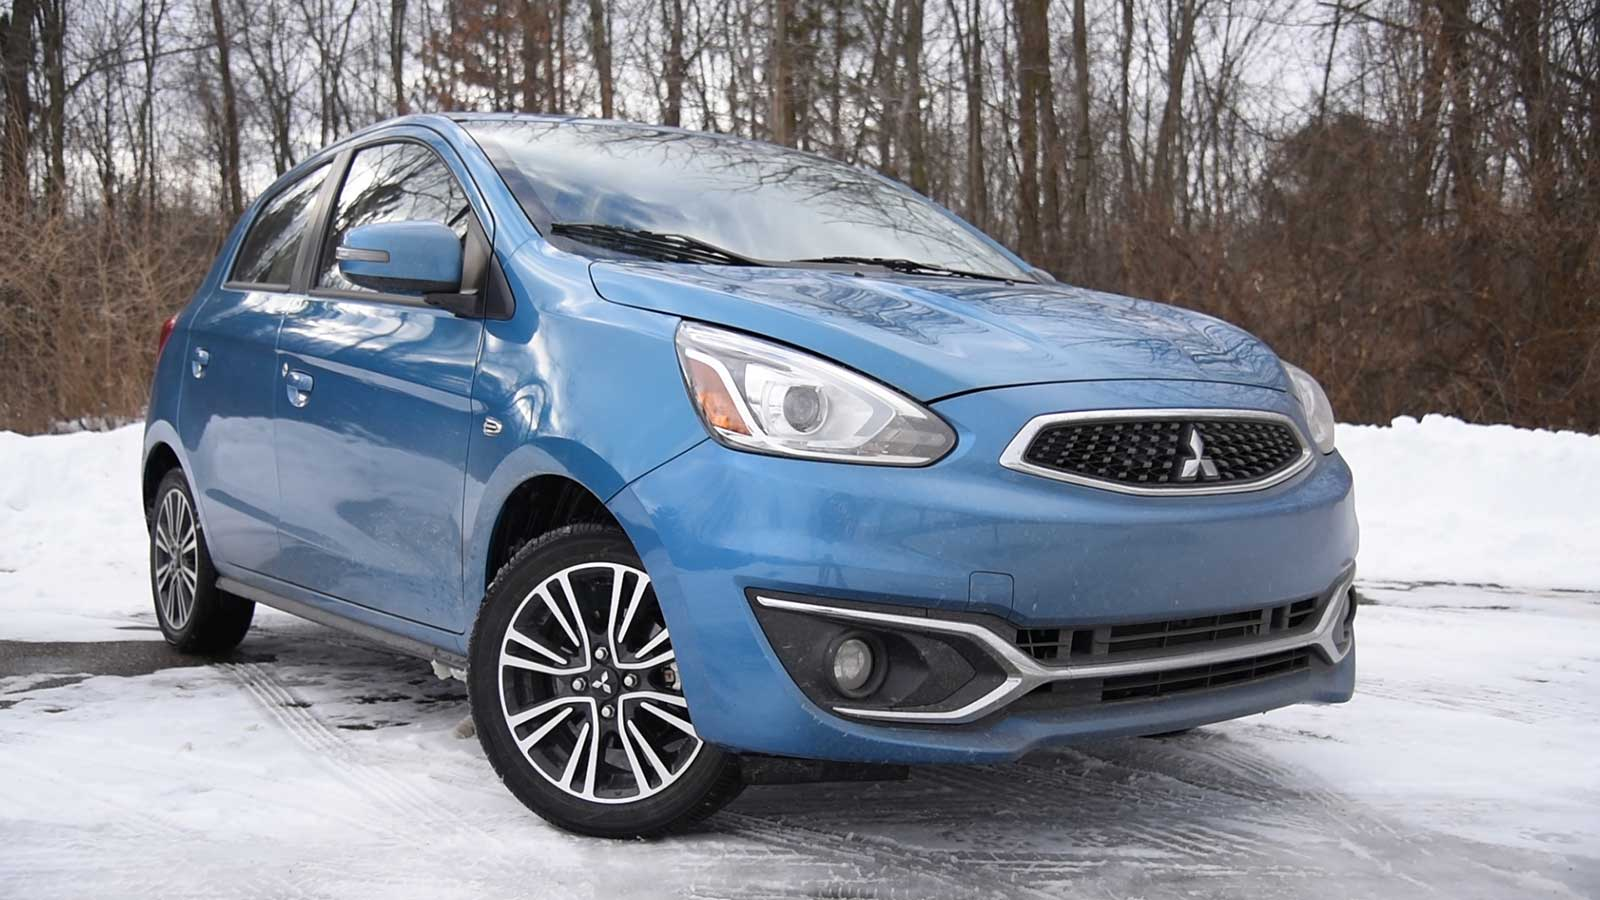 Mirage Tires Price >> 2017 Mitsubishi Mirage GT Review - AutoGuide.com